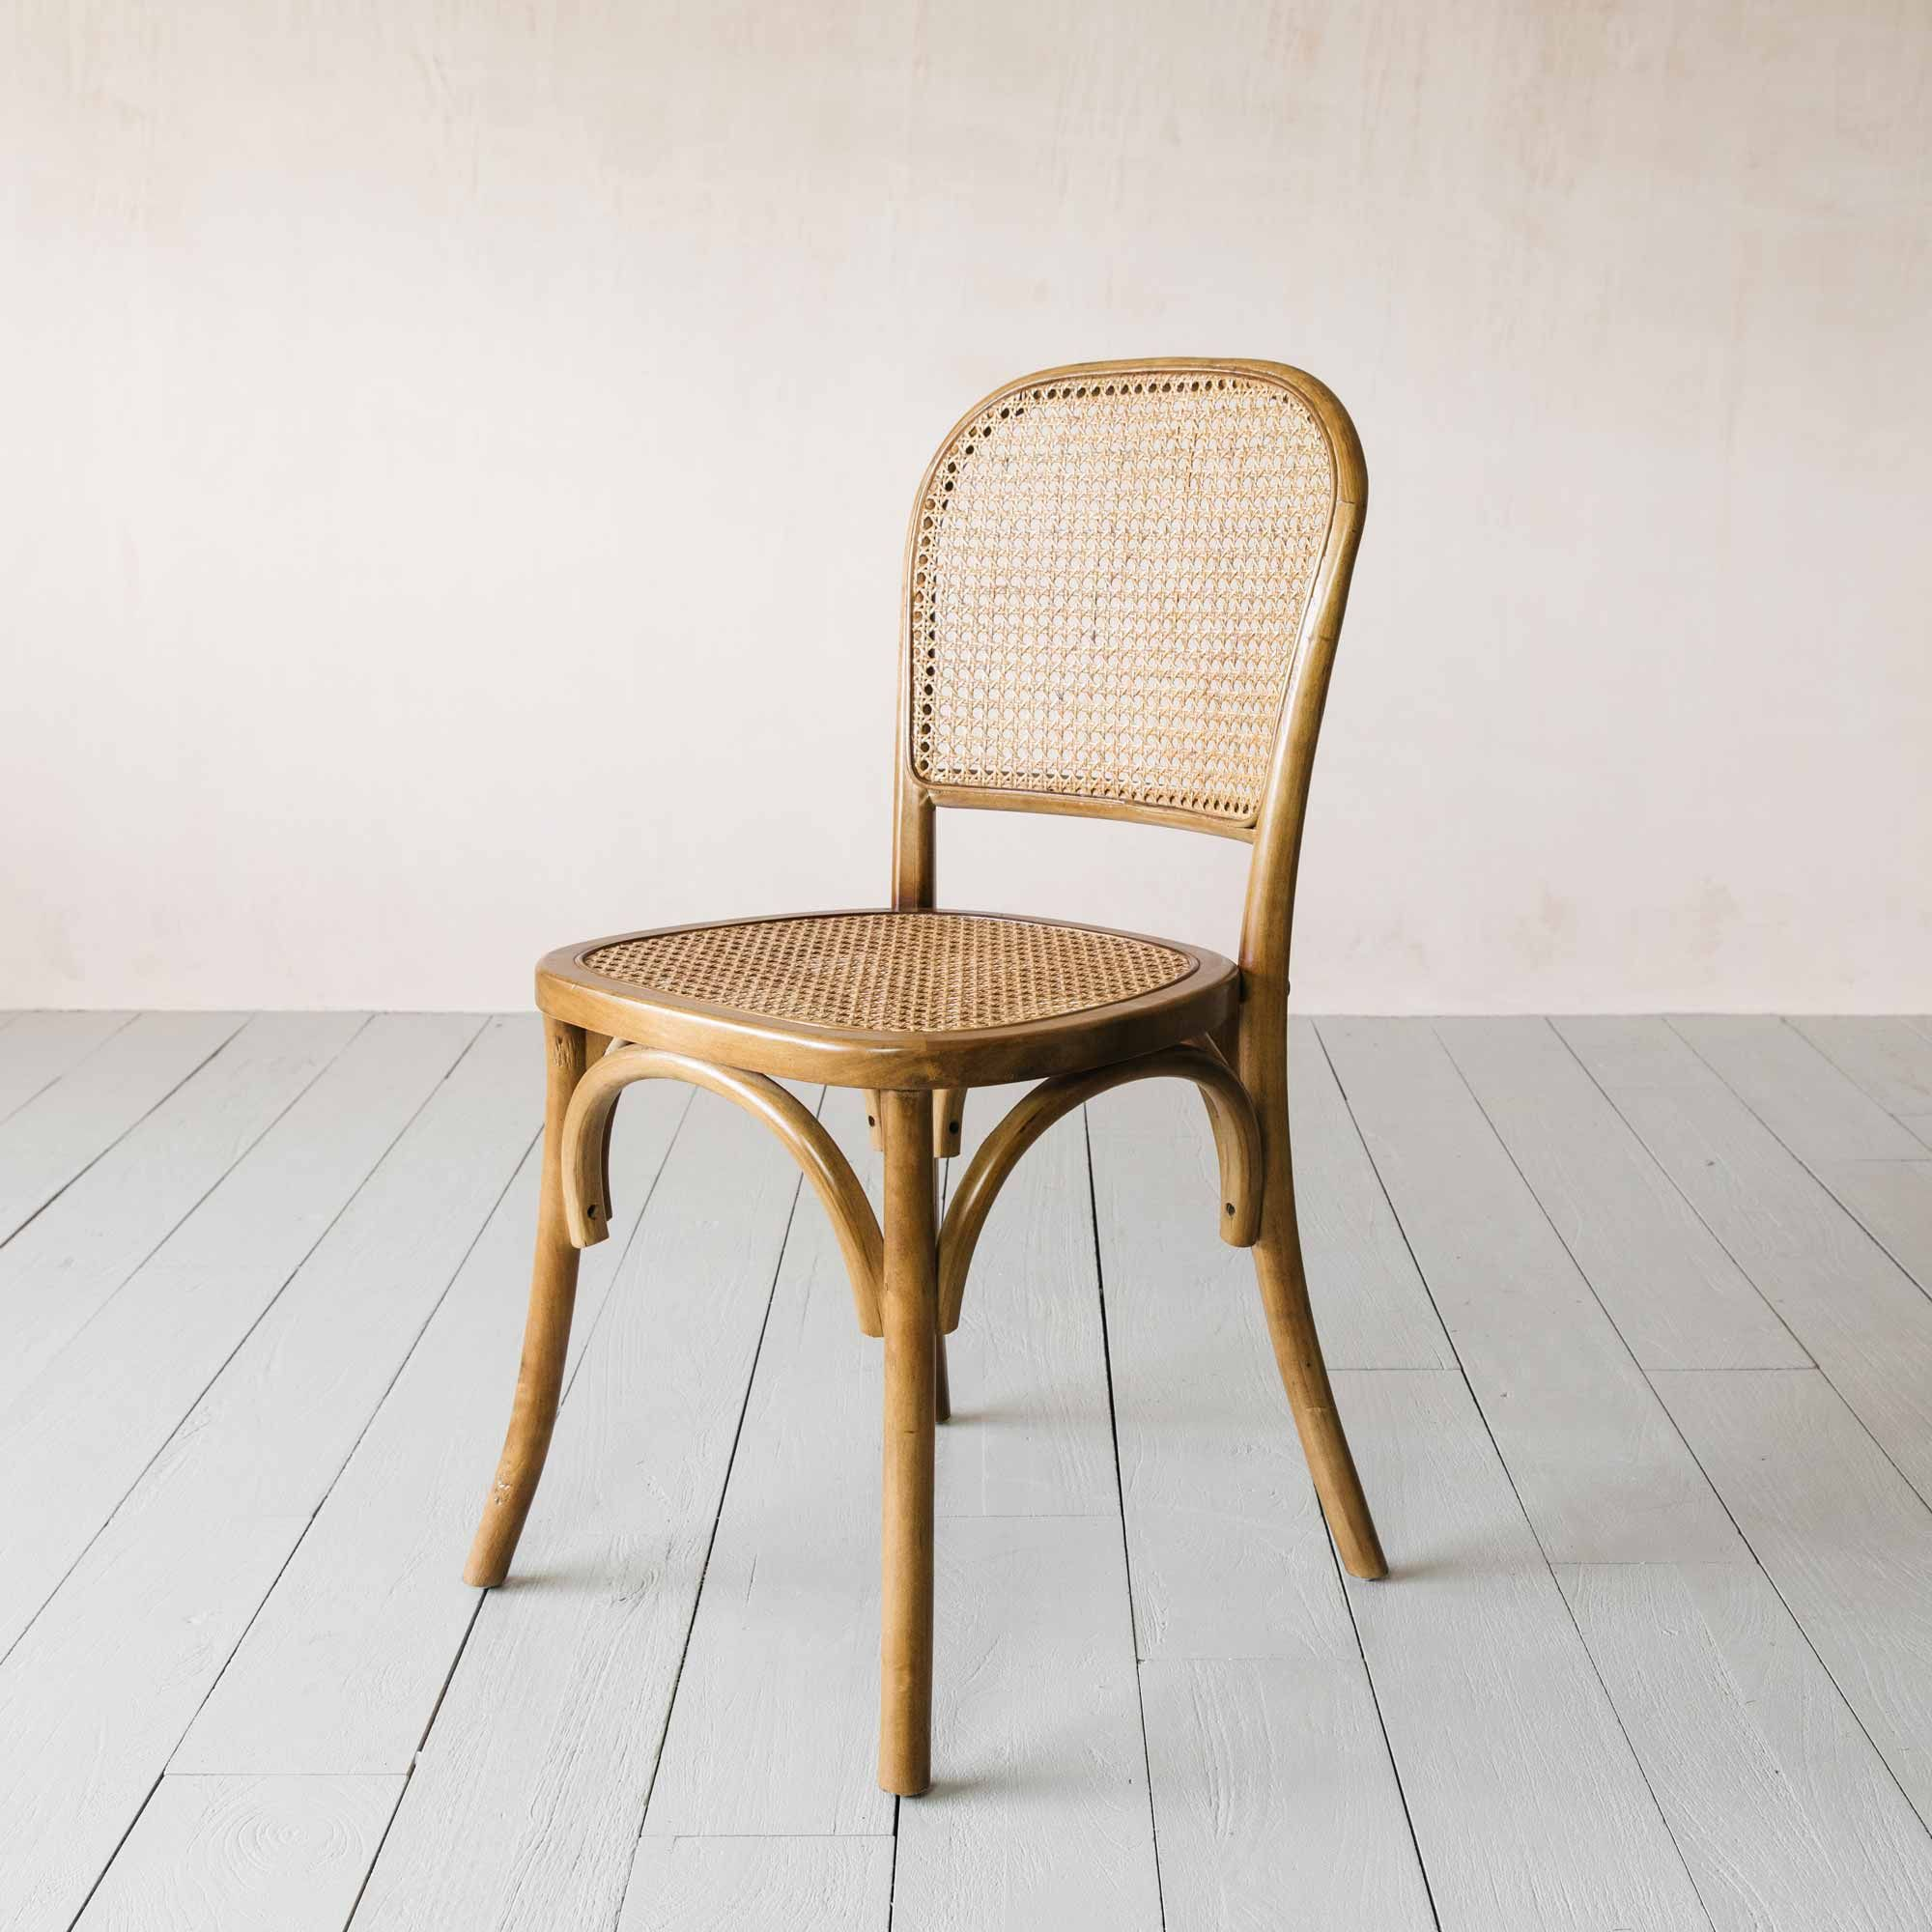 Natural Wicker Bistro Chair In 2020 Bistro Chairs Chair Wicker